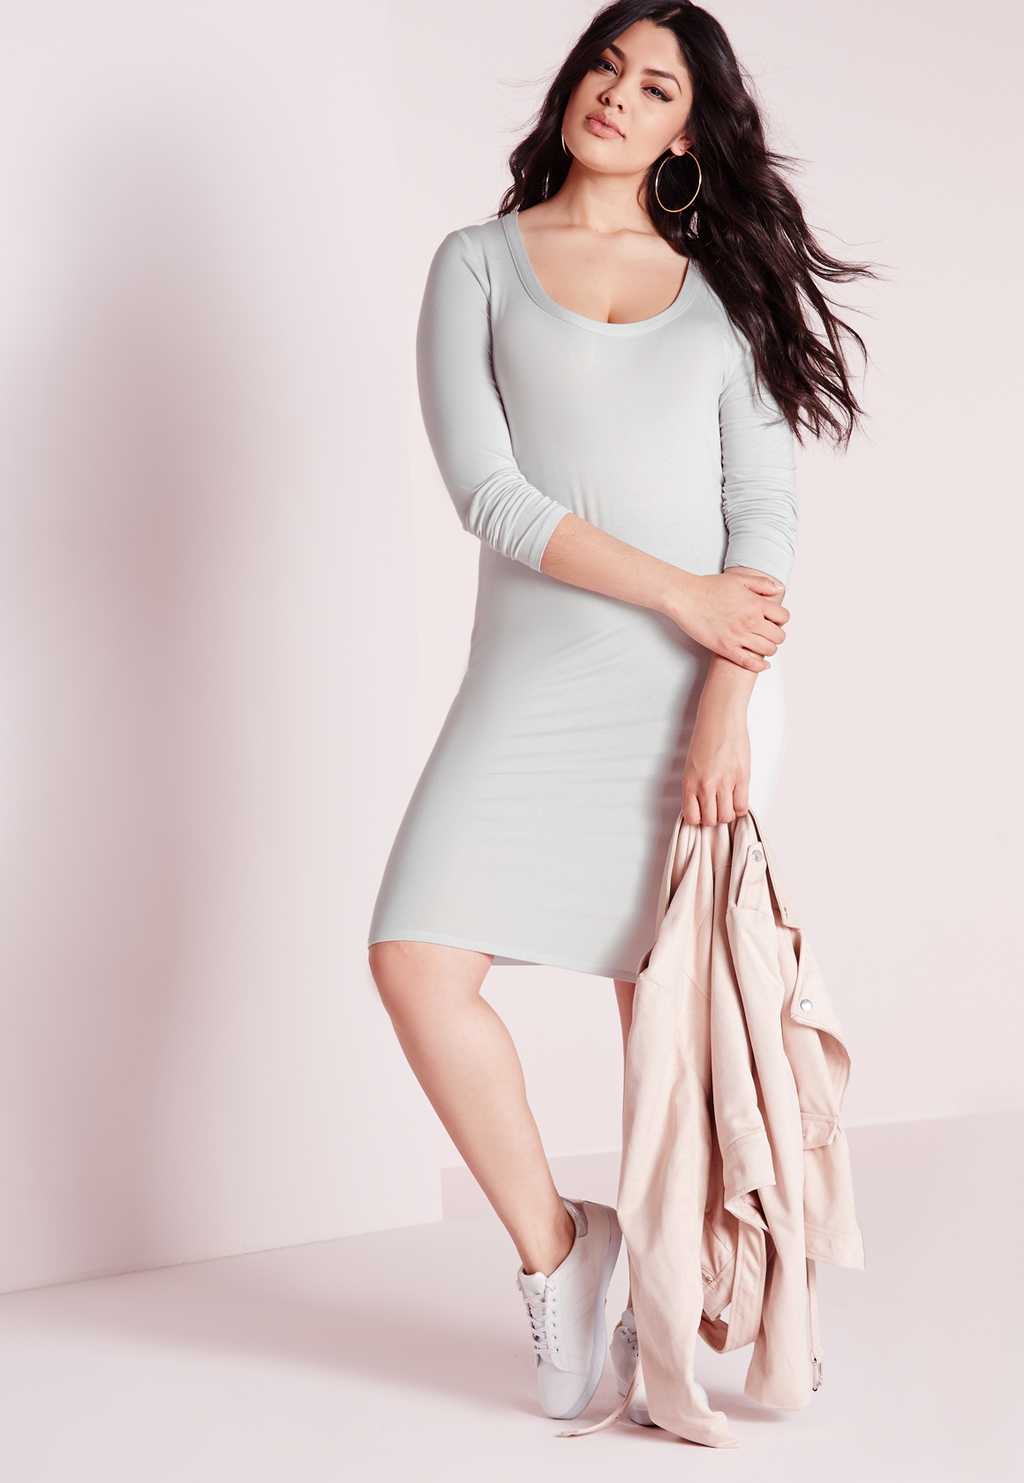 Plus Size Midi Long Sleeve Dress Ice Grey, Grey - pattern: plain; style: bodycon; hip detail: draws attention to hips; predominant colour: light grey; occasions: casual; length: on the knee; fit: body skimming; neckline: scoop; fibres: polyester/polyamide - stretch; sleeve length: 3/4 length; sleeve style: standard; texture group: jersey - clingy; pattern type: fabric; season: s/s 2016; wardrobe: basic